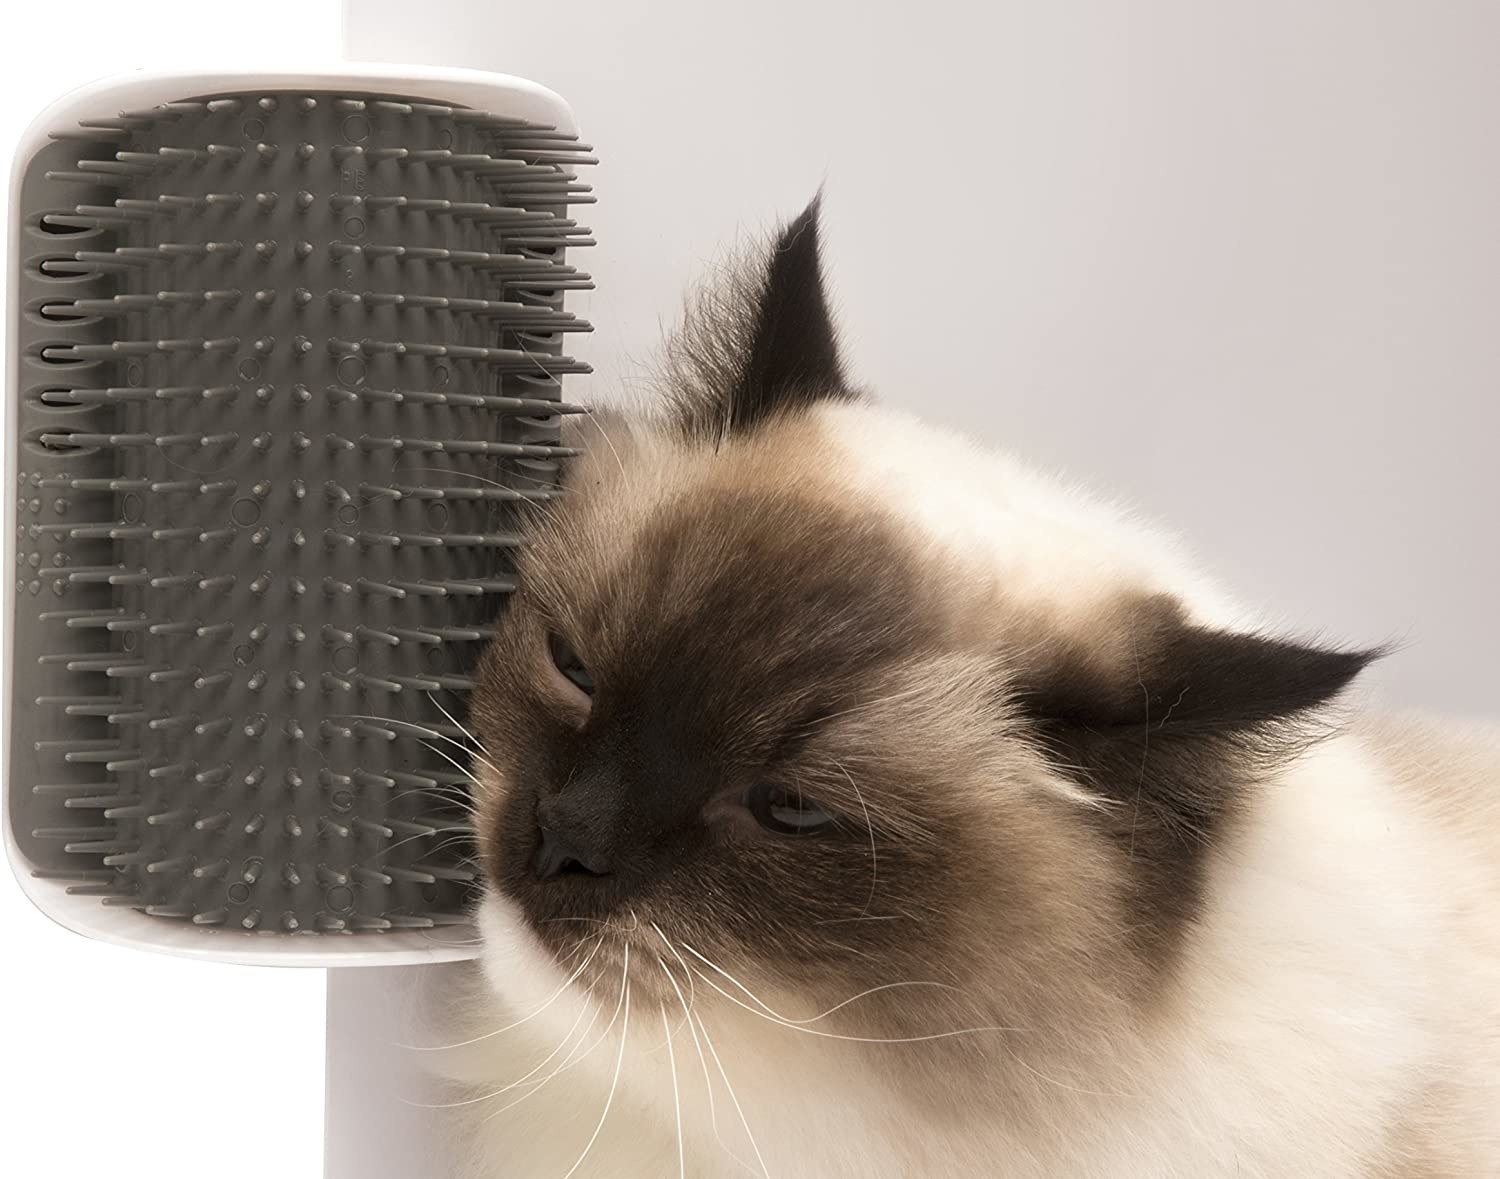 a fluffy cat brushing their face up against the toy that looks like a mounted hair brush